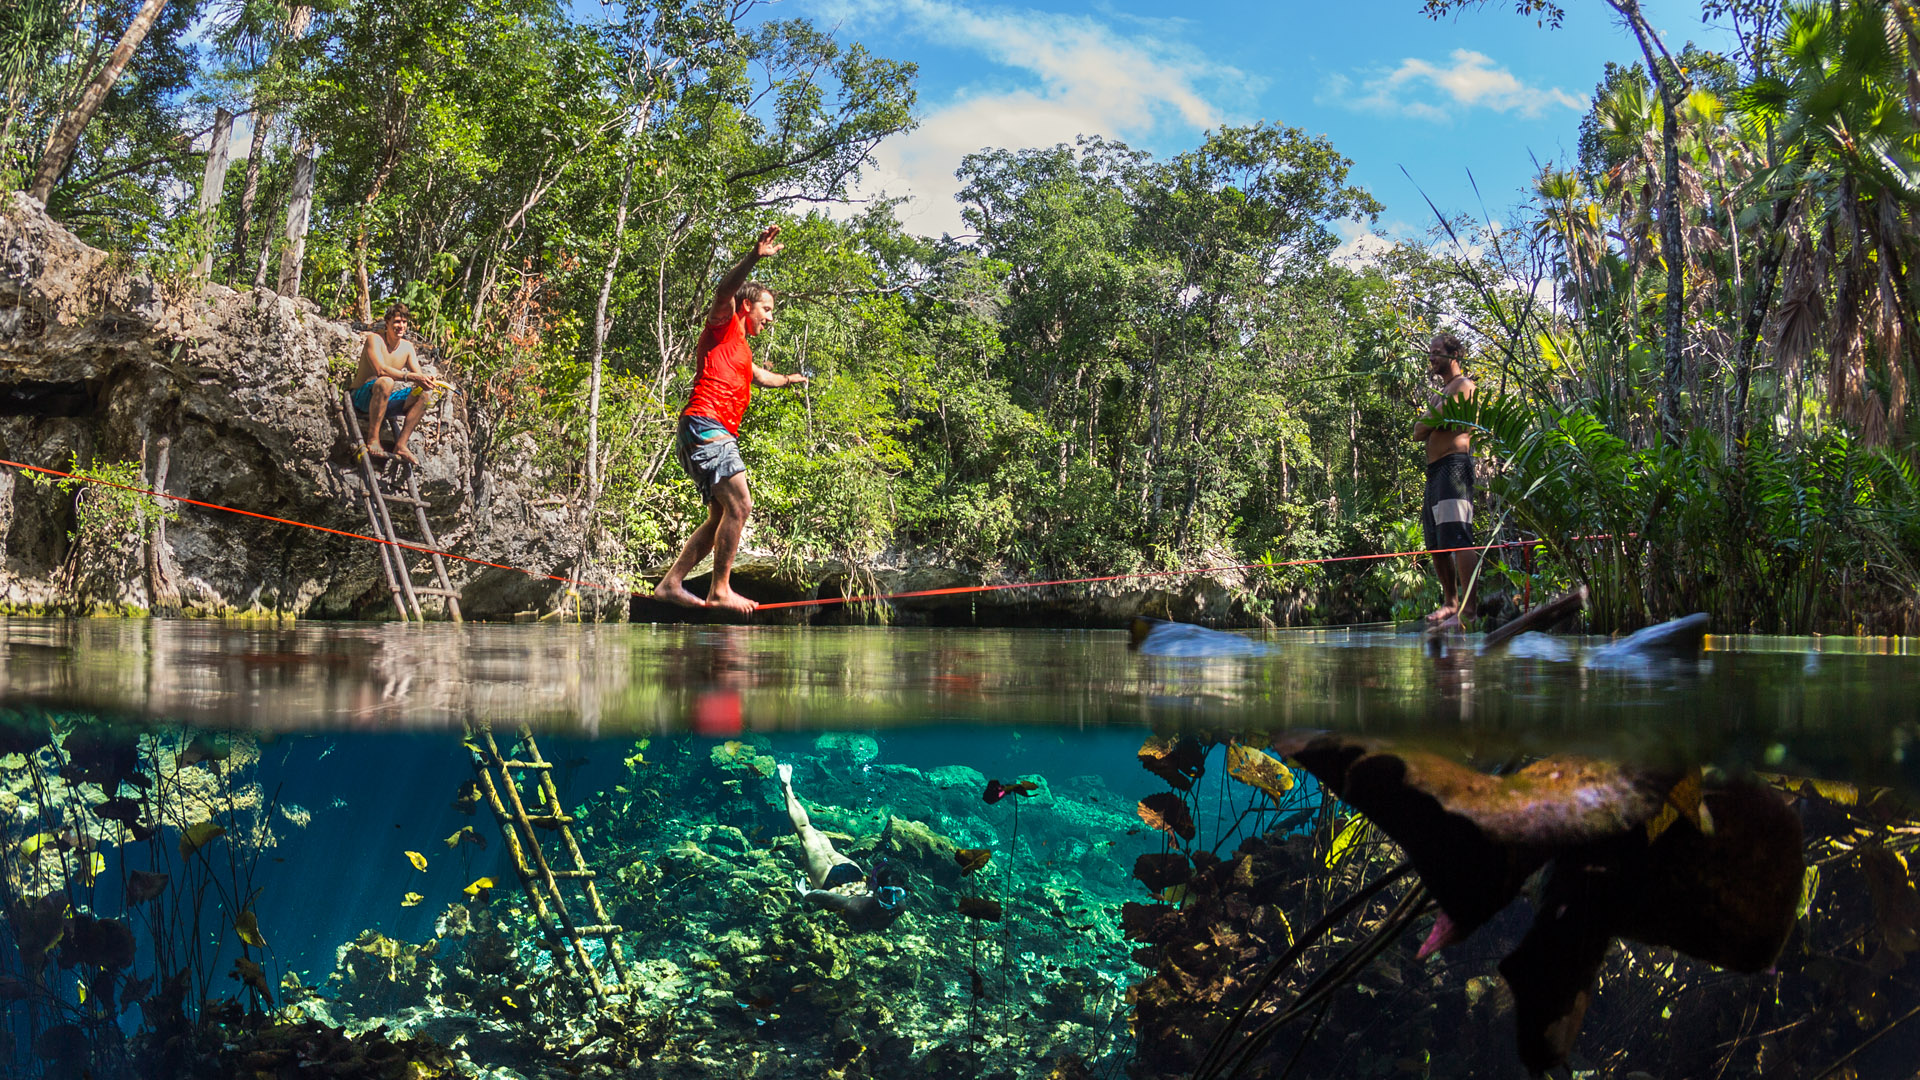 Adventure photographer – Slacklining over a cenote in the ...